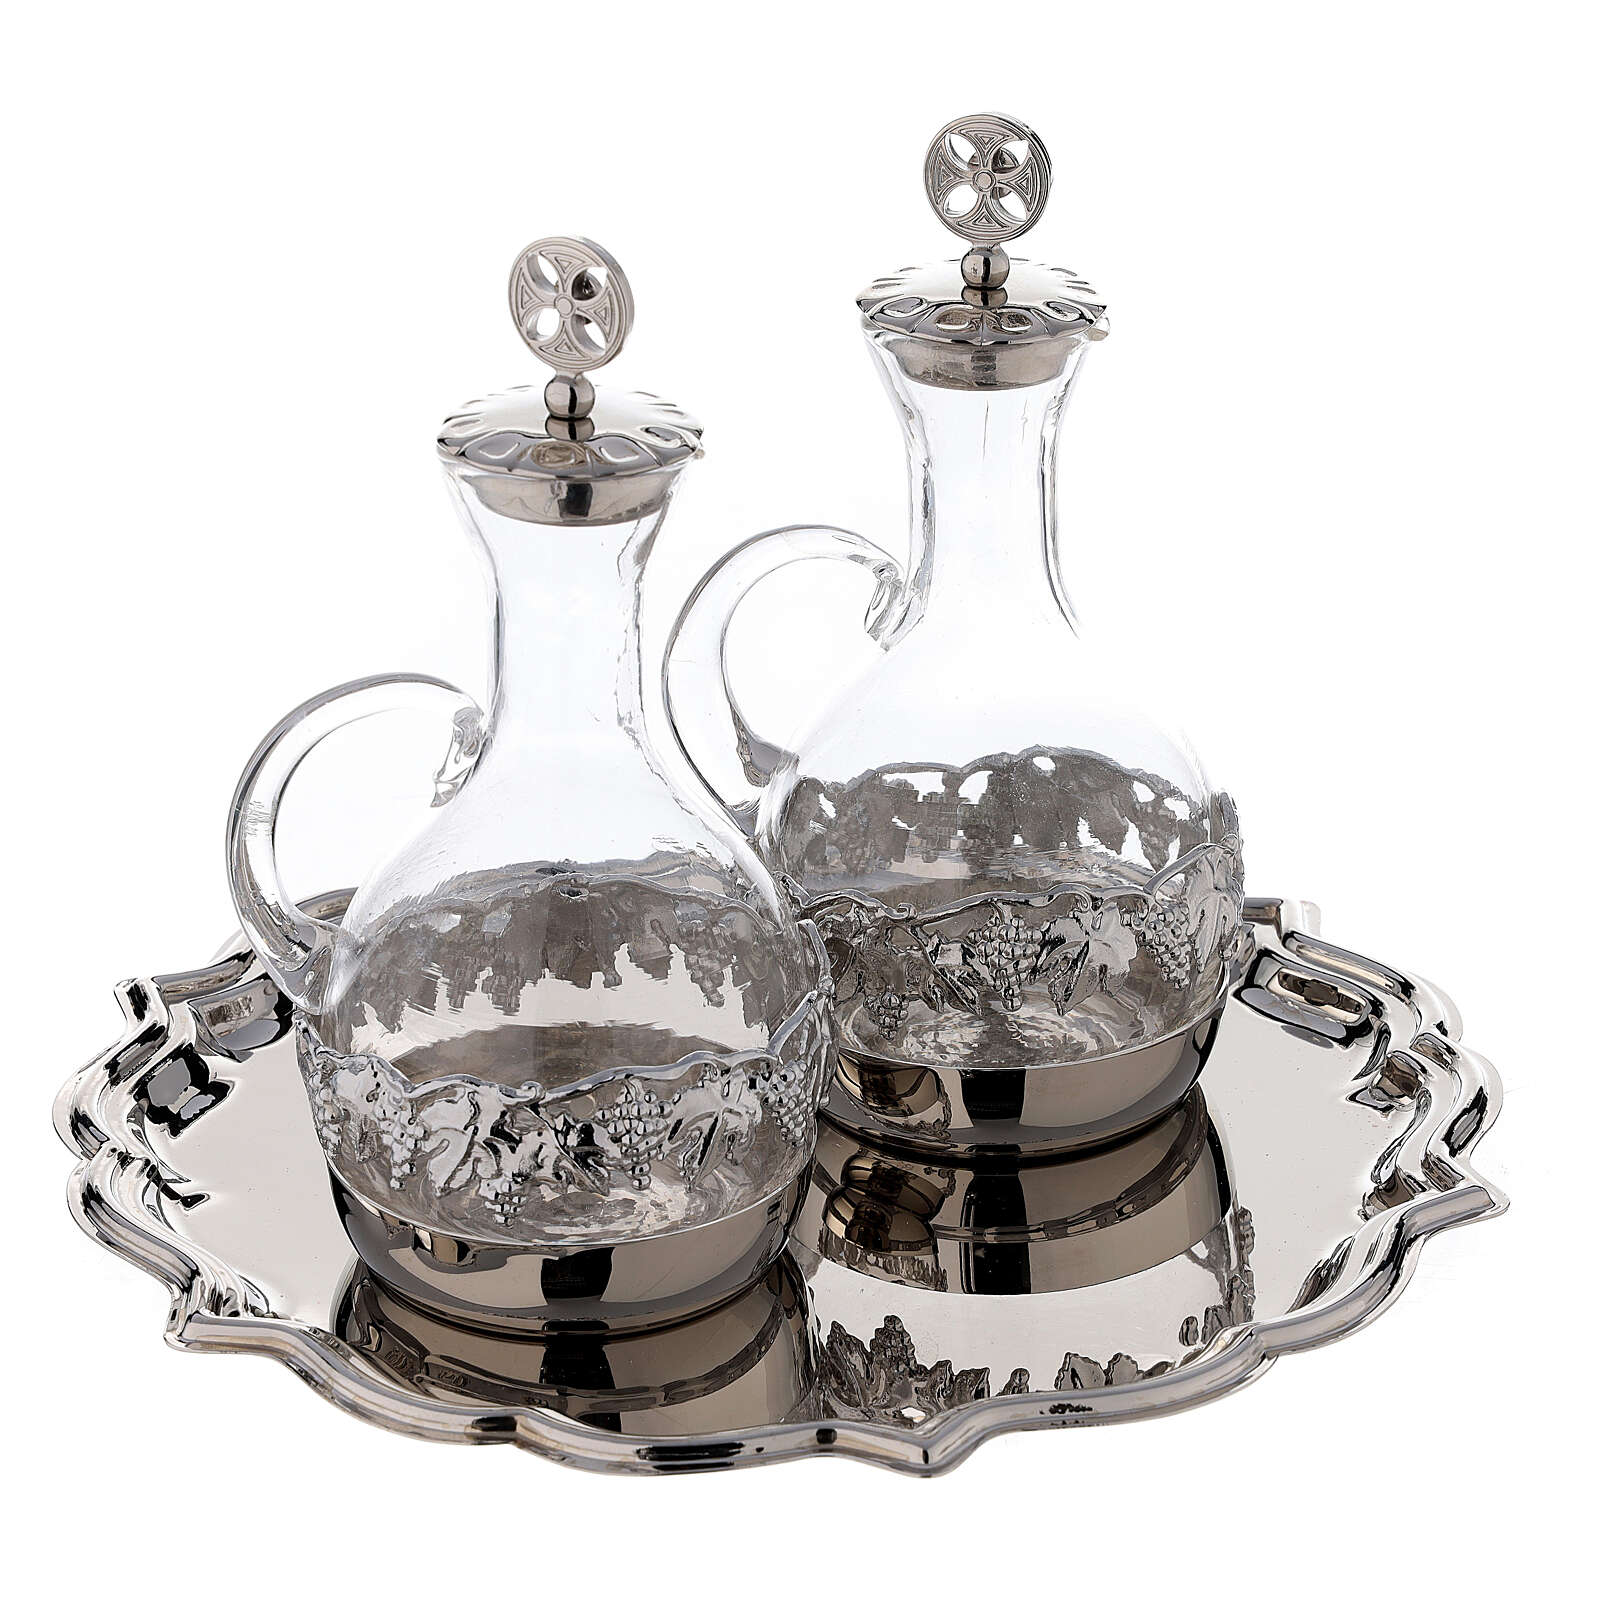 Venise glass cruet set with decorated by hand 200 ml 4